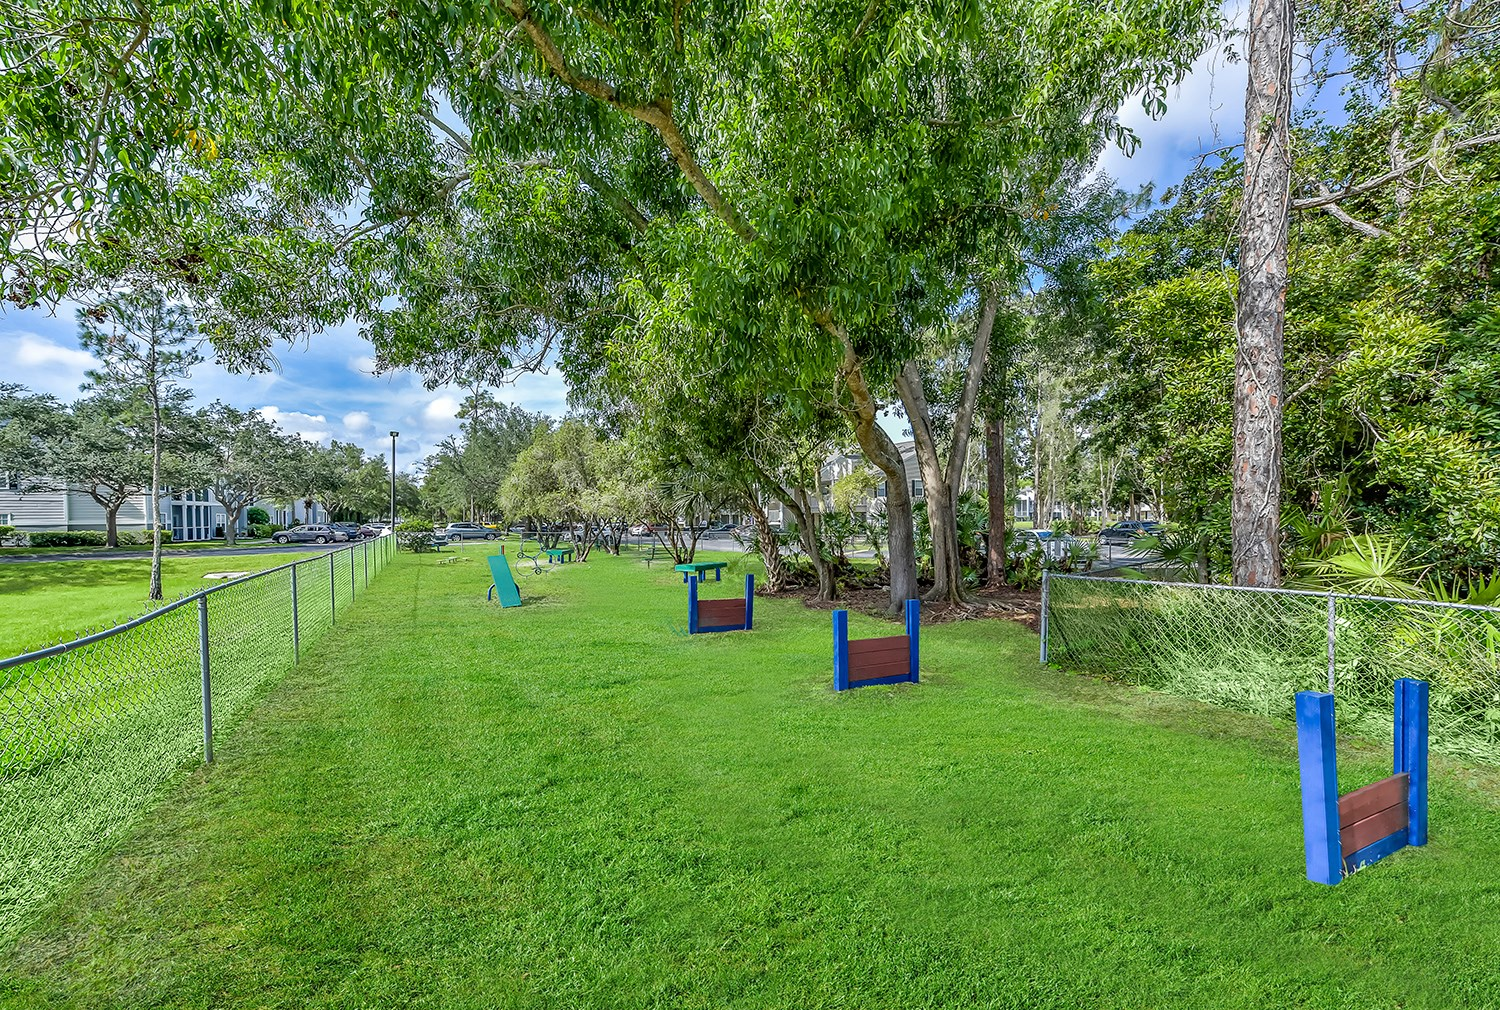 Dog Park at Brantley Pines Apartments in Ft. Myers, FL